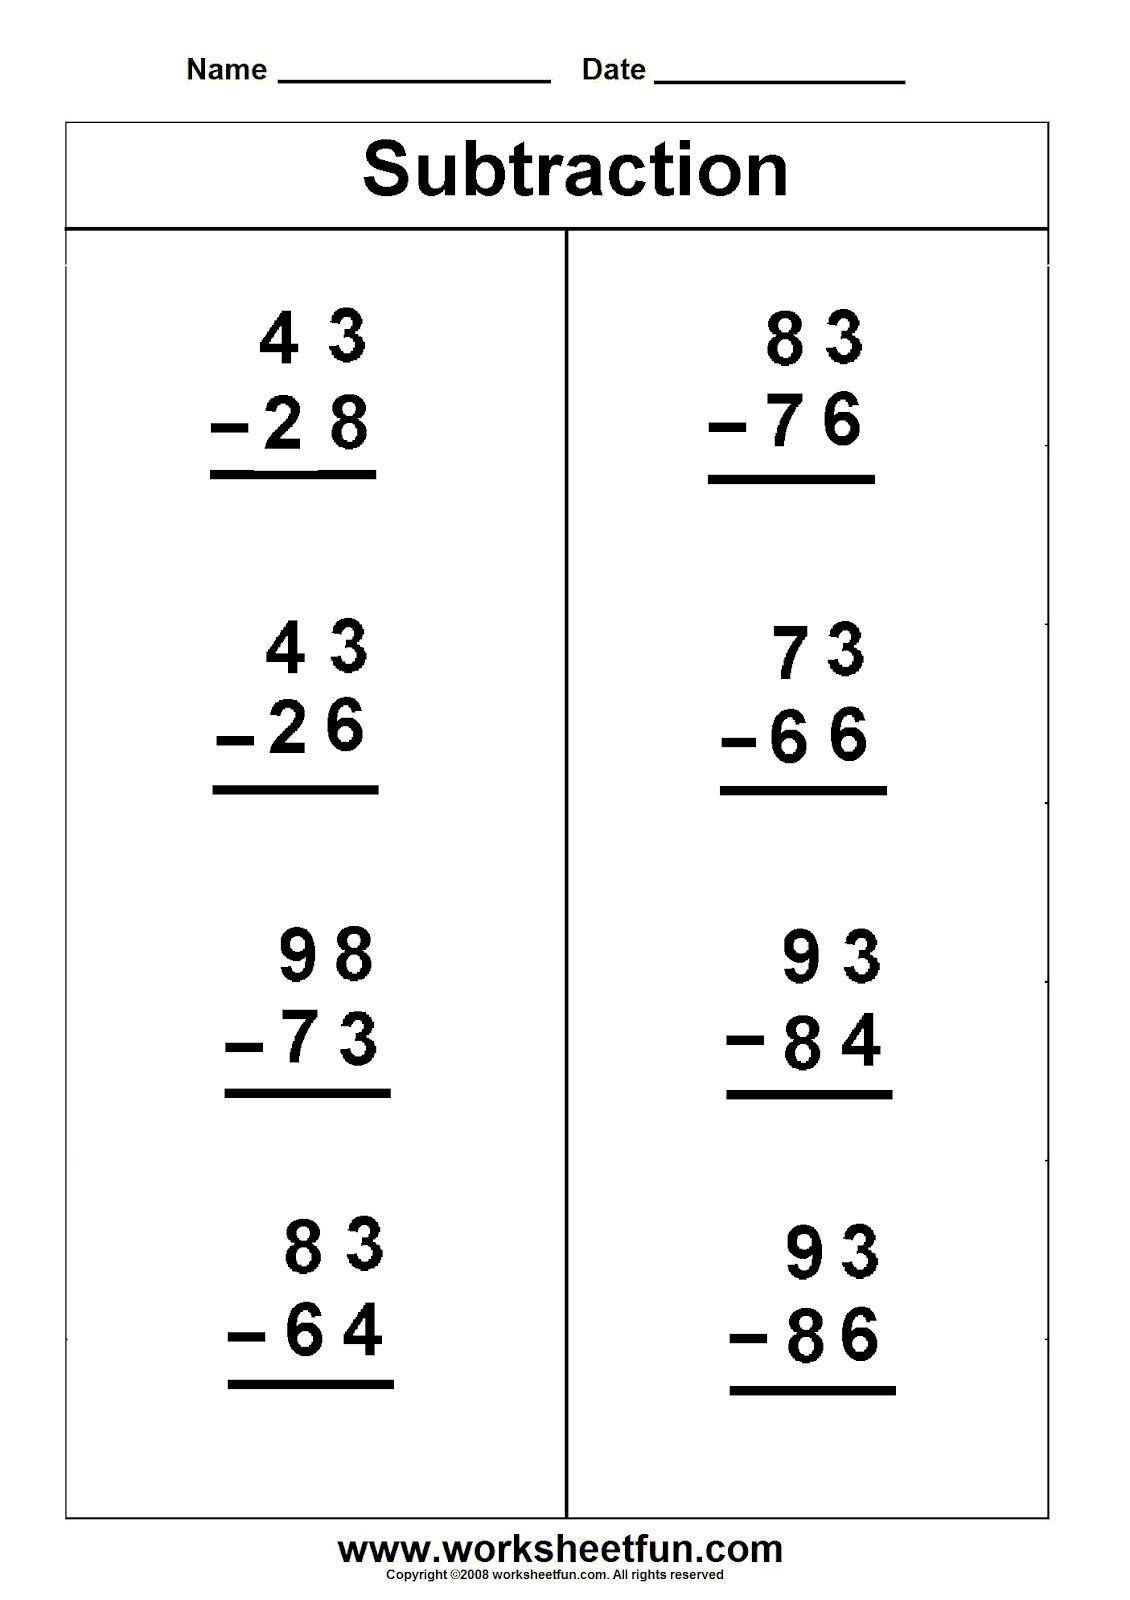 Touch Math Worksheet Generator Two Digit Vertical Subtraction 5 1130—1600